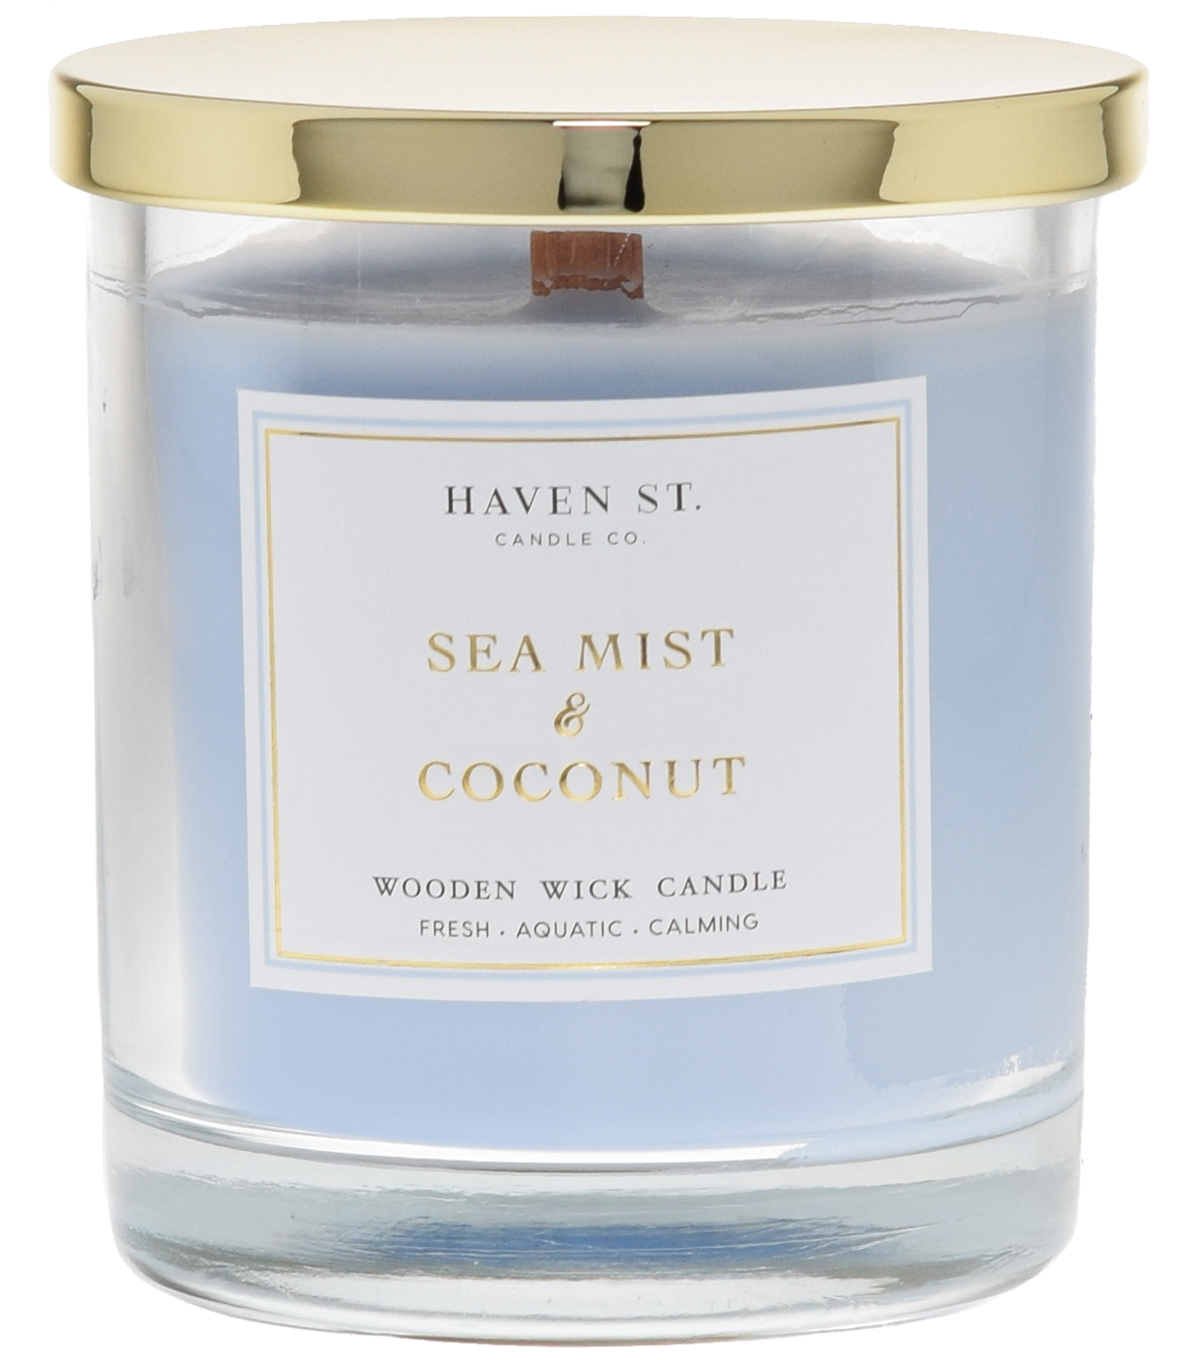 Haven St. Candle Co. Sea Mist & Coconut Scented Wooden Wick Jar Candle